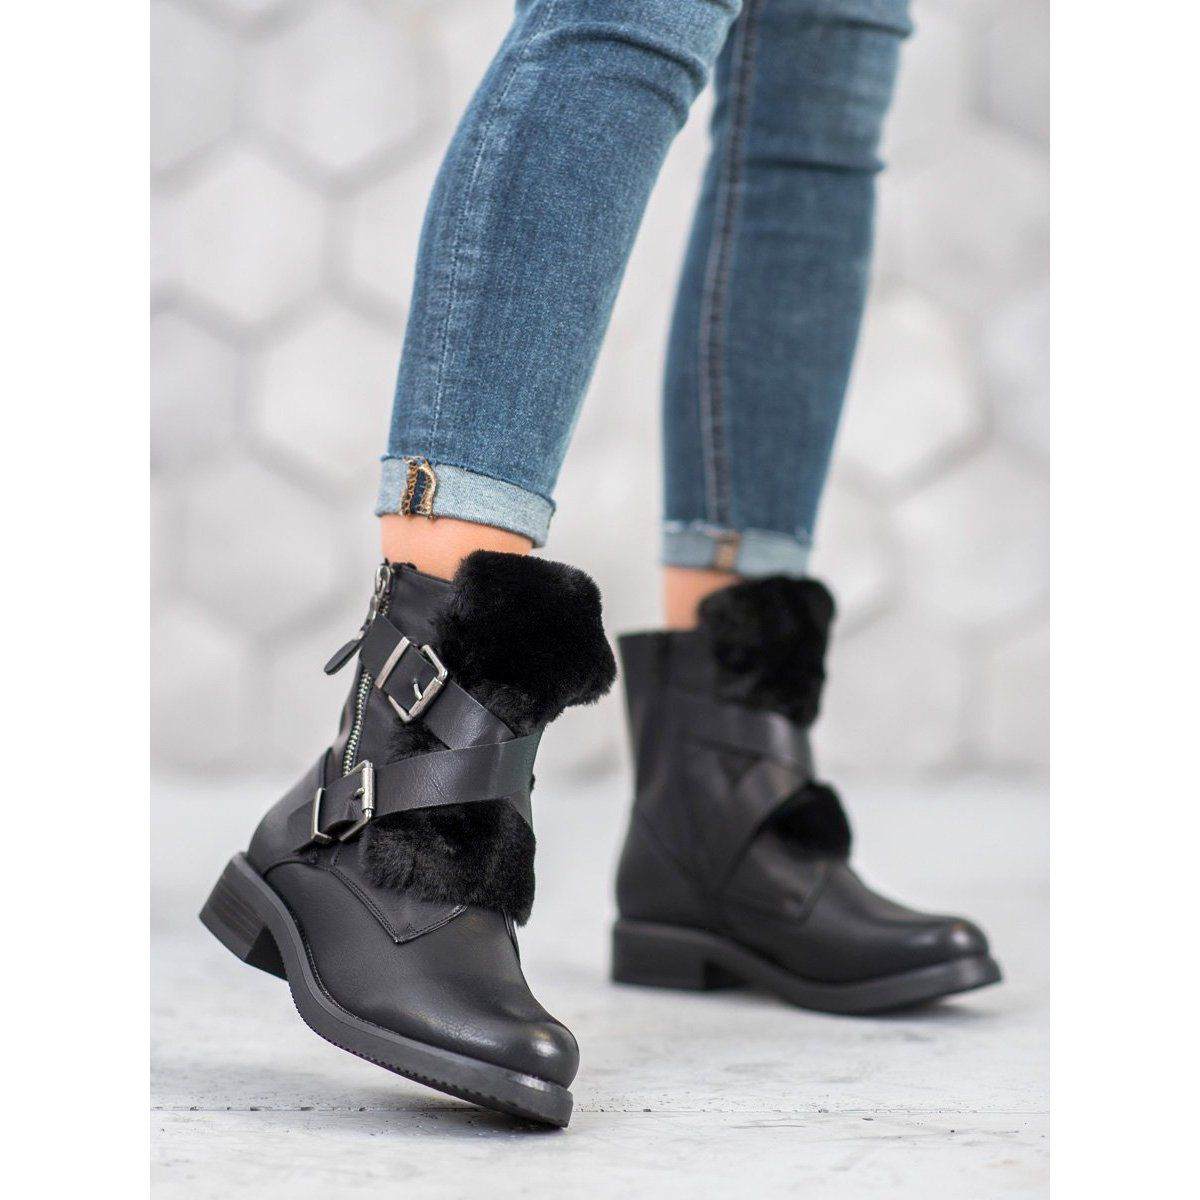 Boots Women S Superme Super Me Casual Workers Black Boot Shoes Women Casual Boots